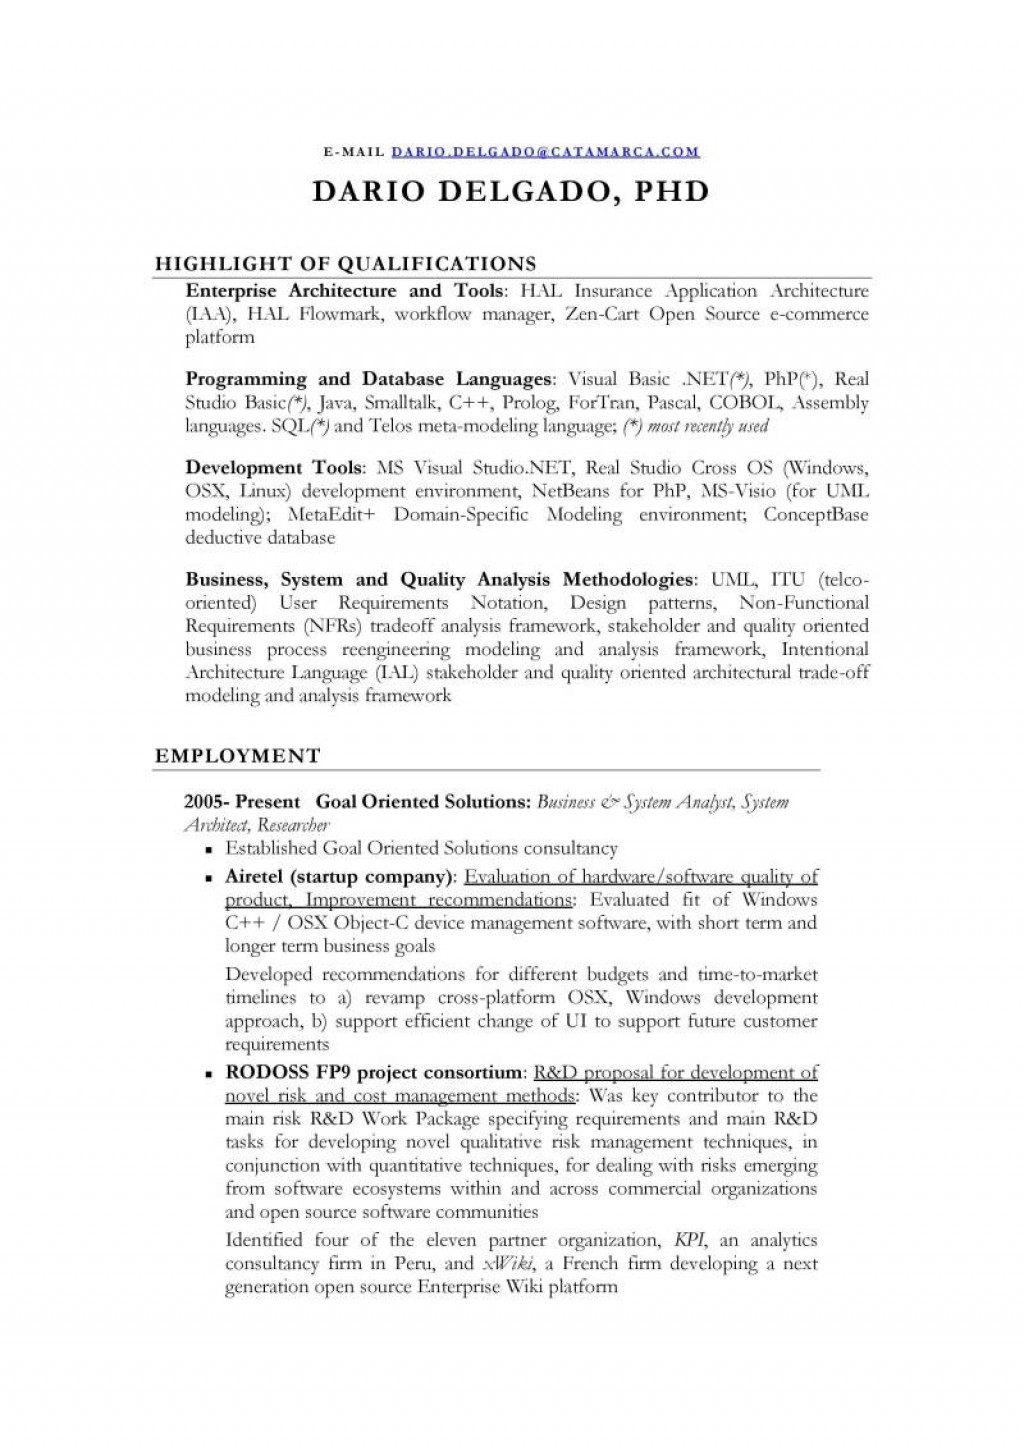 016 Sample Resume Net Developer Unique Essays Apply Texas Professional School Essay Example Of Developerresize8002c1131ssl1 Archaicawful Topics Prompt C Topic Examples A Large